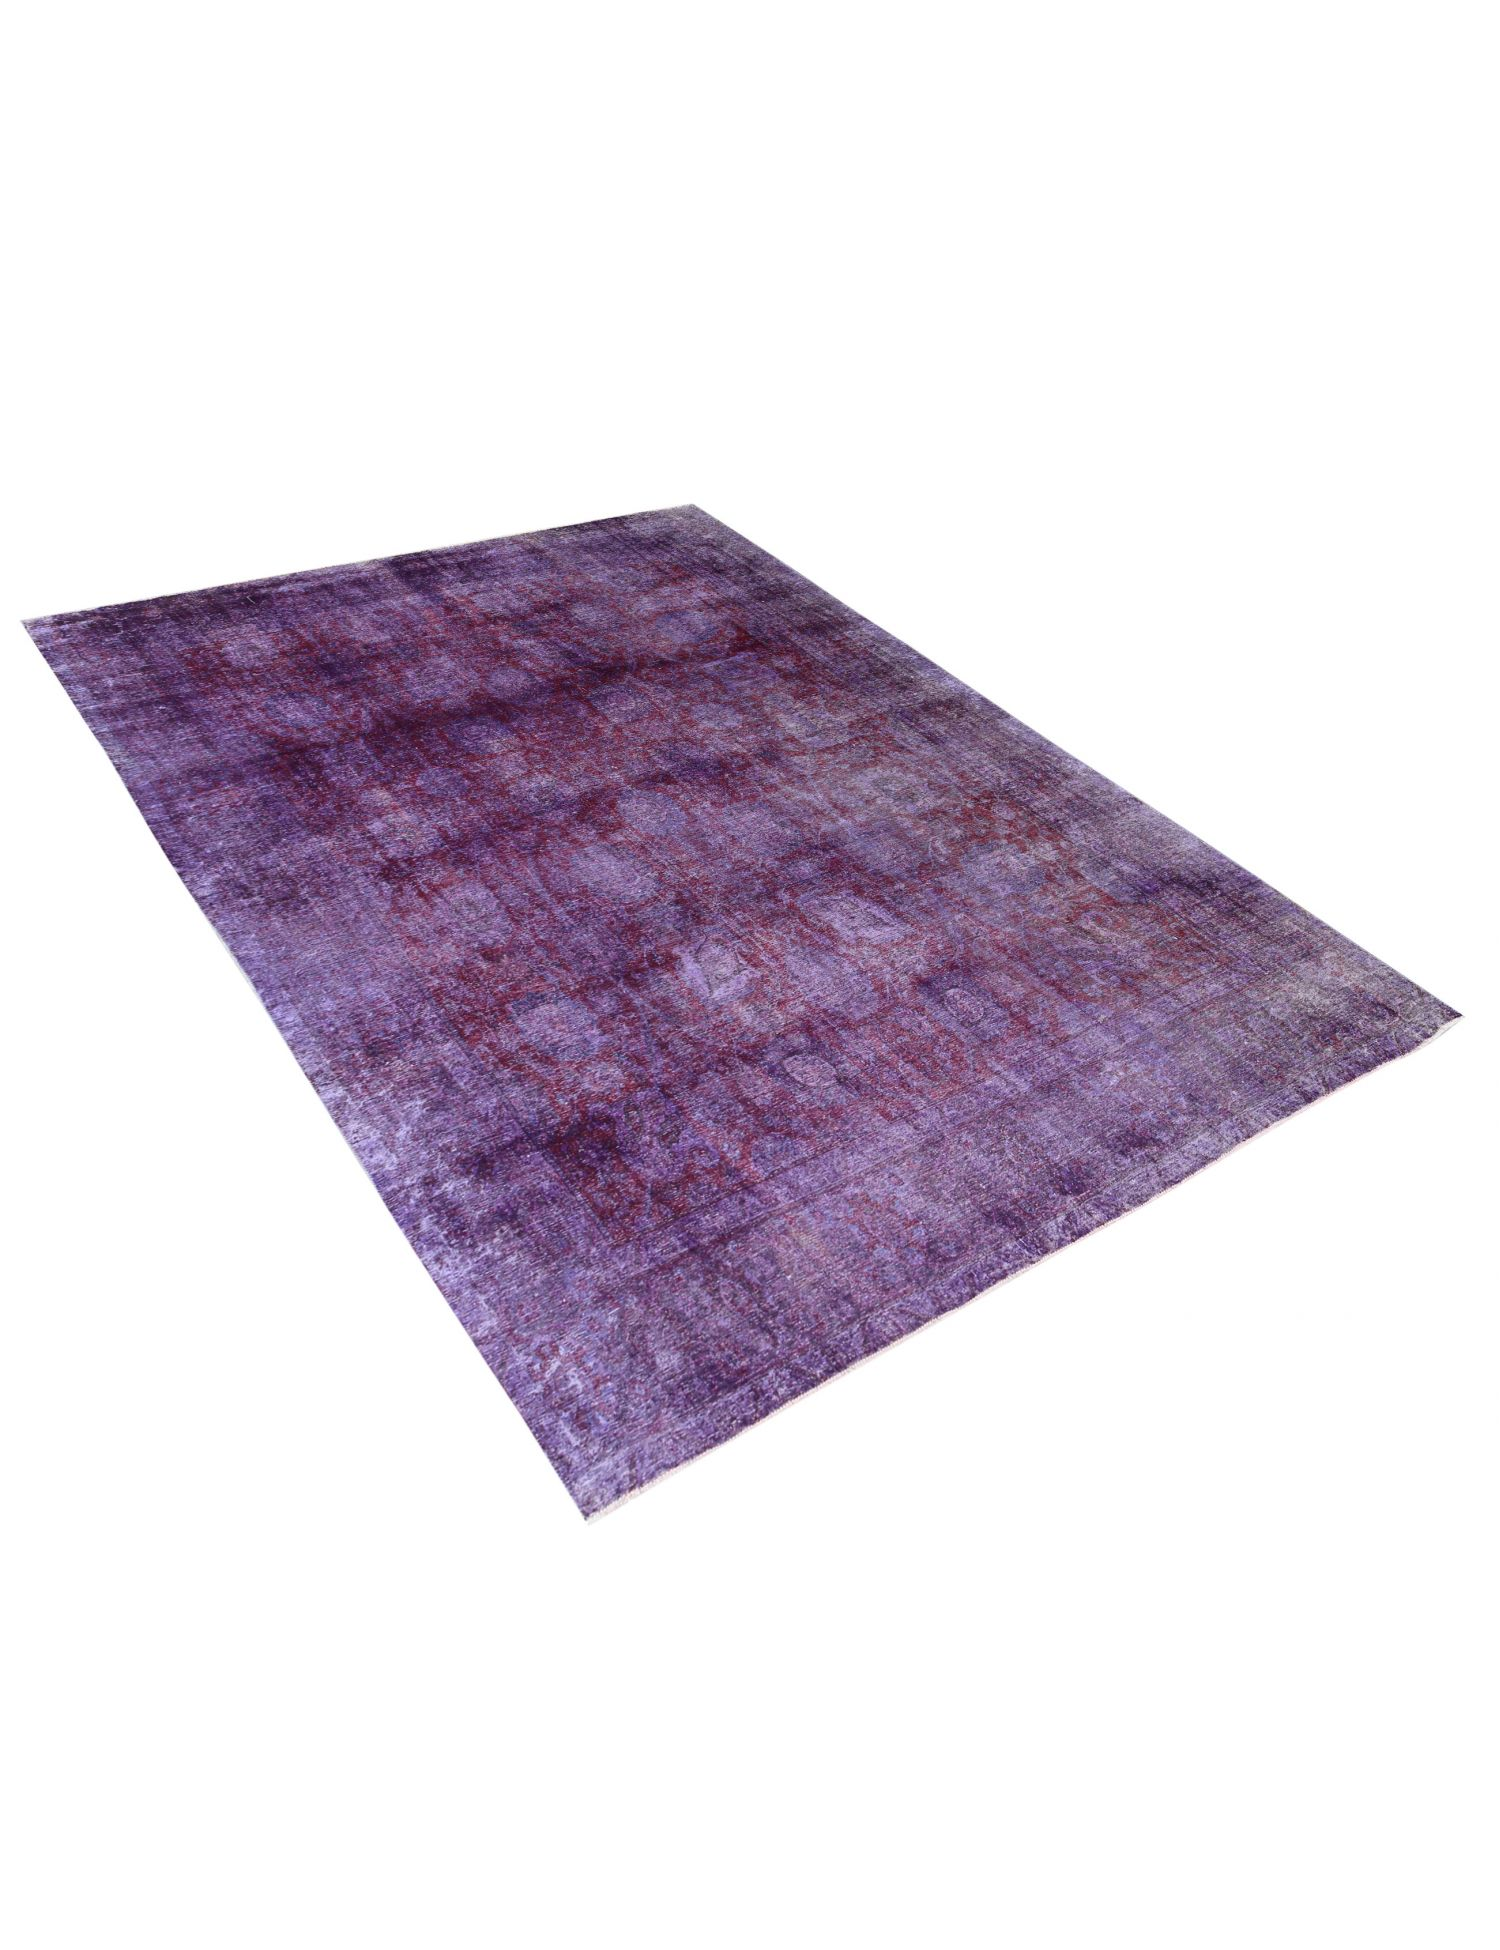 Vintage Carpets  purple <br/>398 x 327 cm